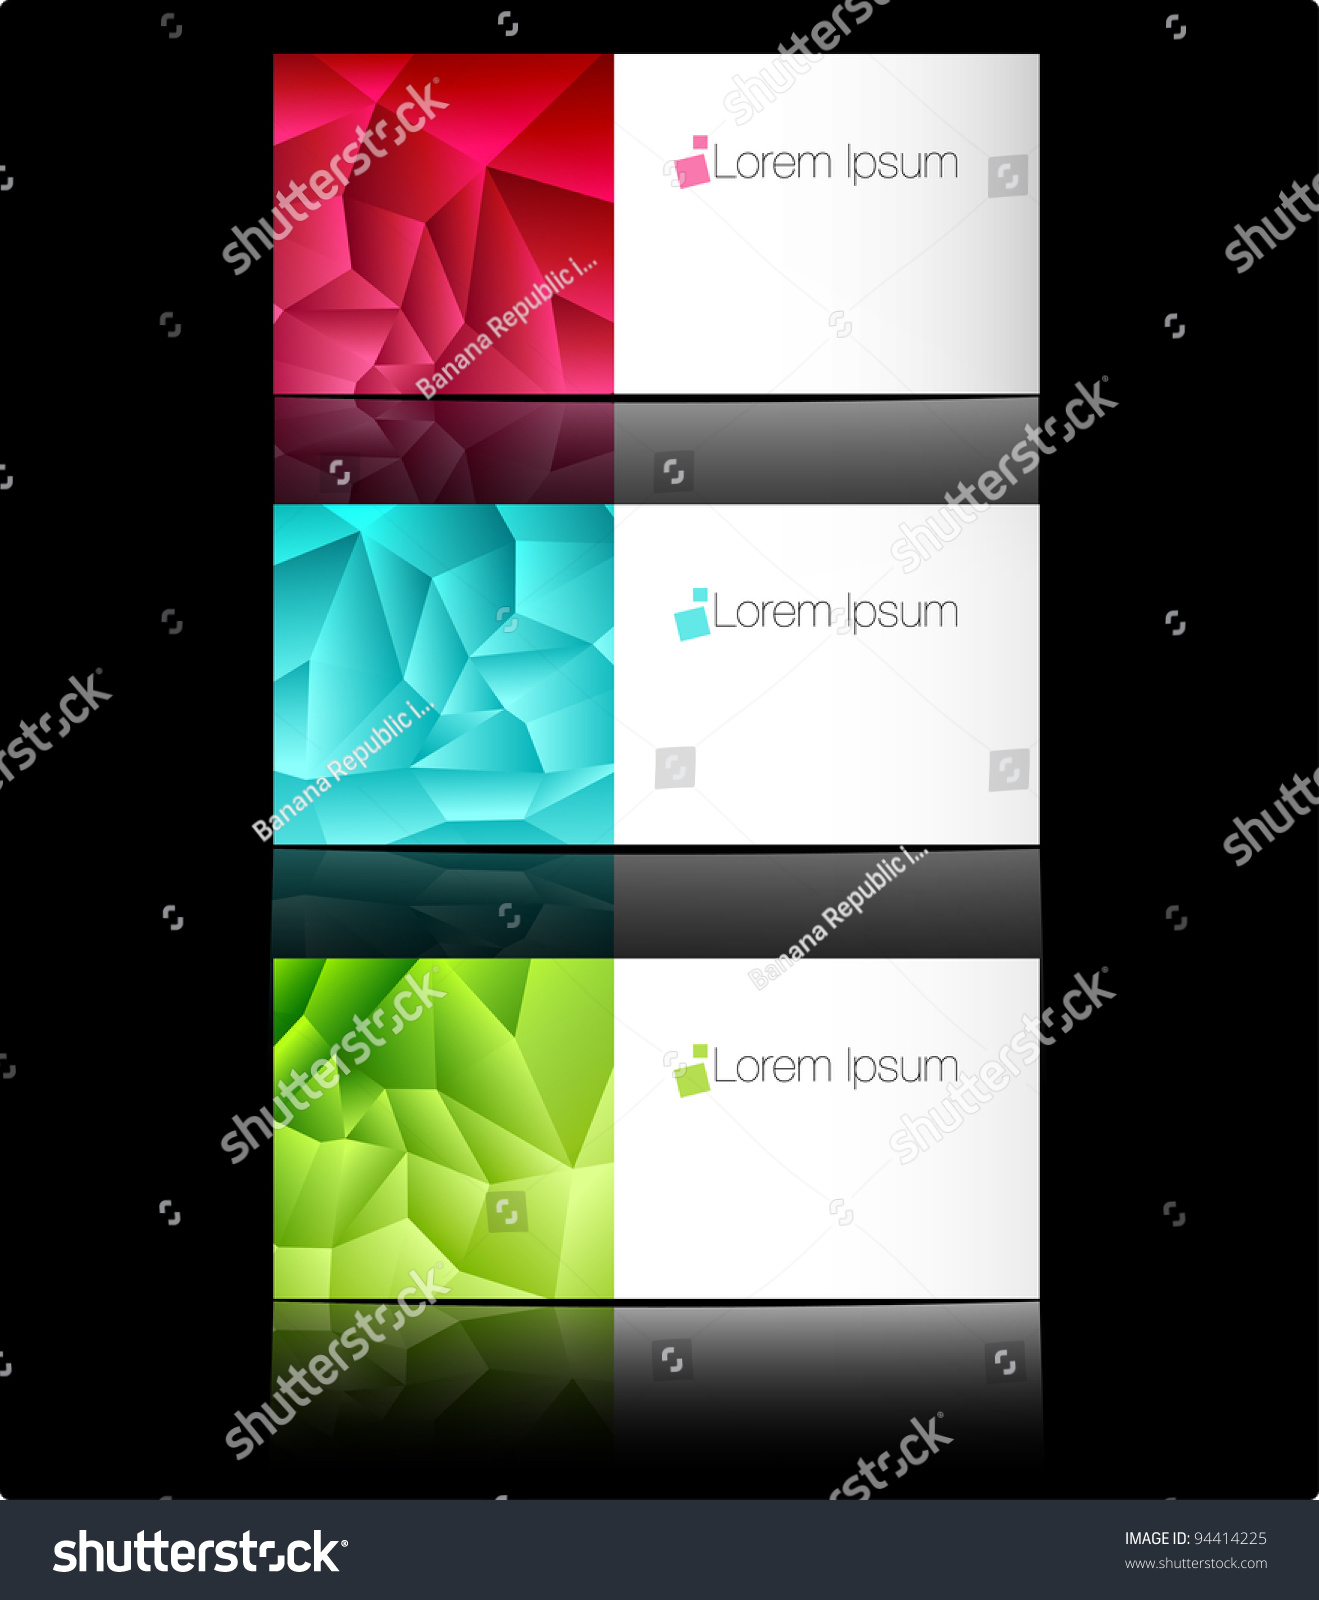 Vector Templates Business Cards Advertising Message Stock Vector - Business card templates for pages